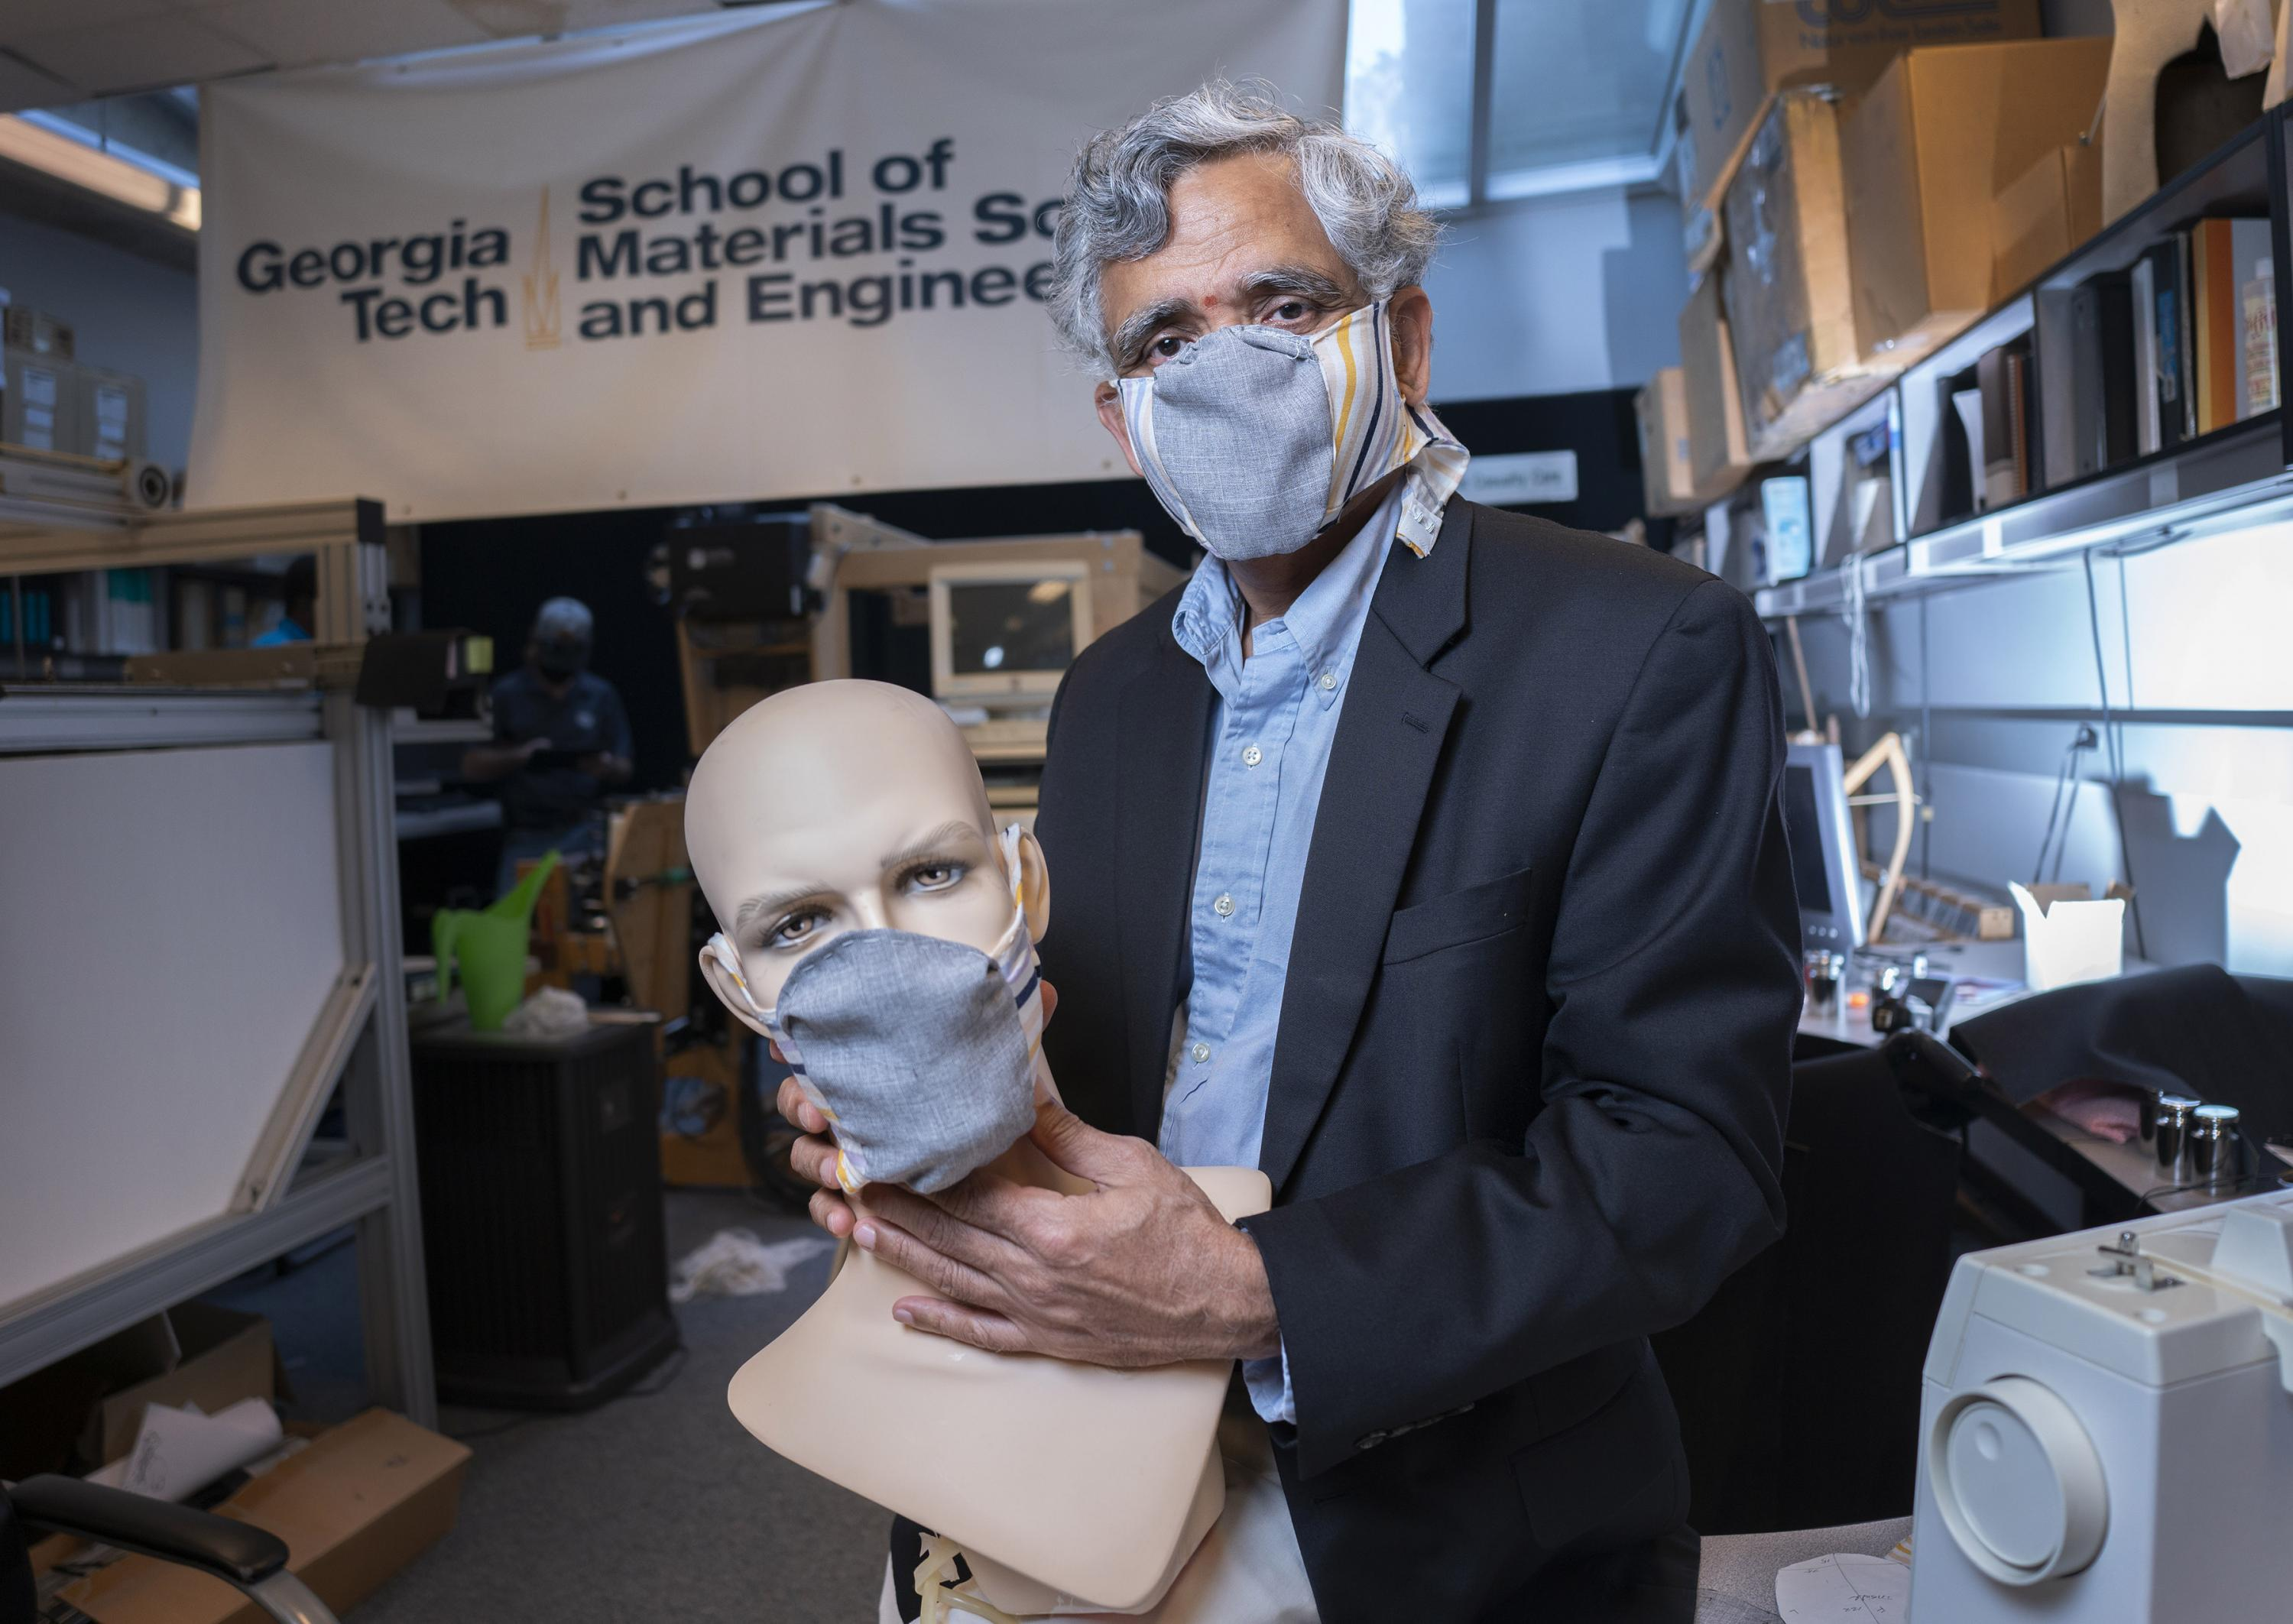 Georgia Tech professor Sundaresan Jayaraman with prototypes of the redesigned face mask. (Credit: Christopher Moore, Georgia Tech)